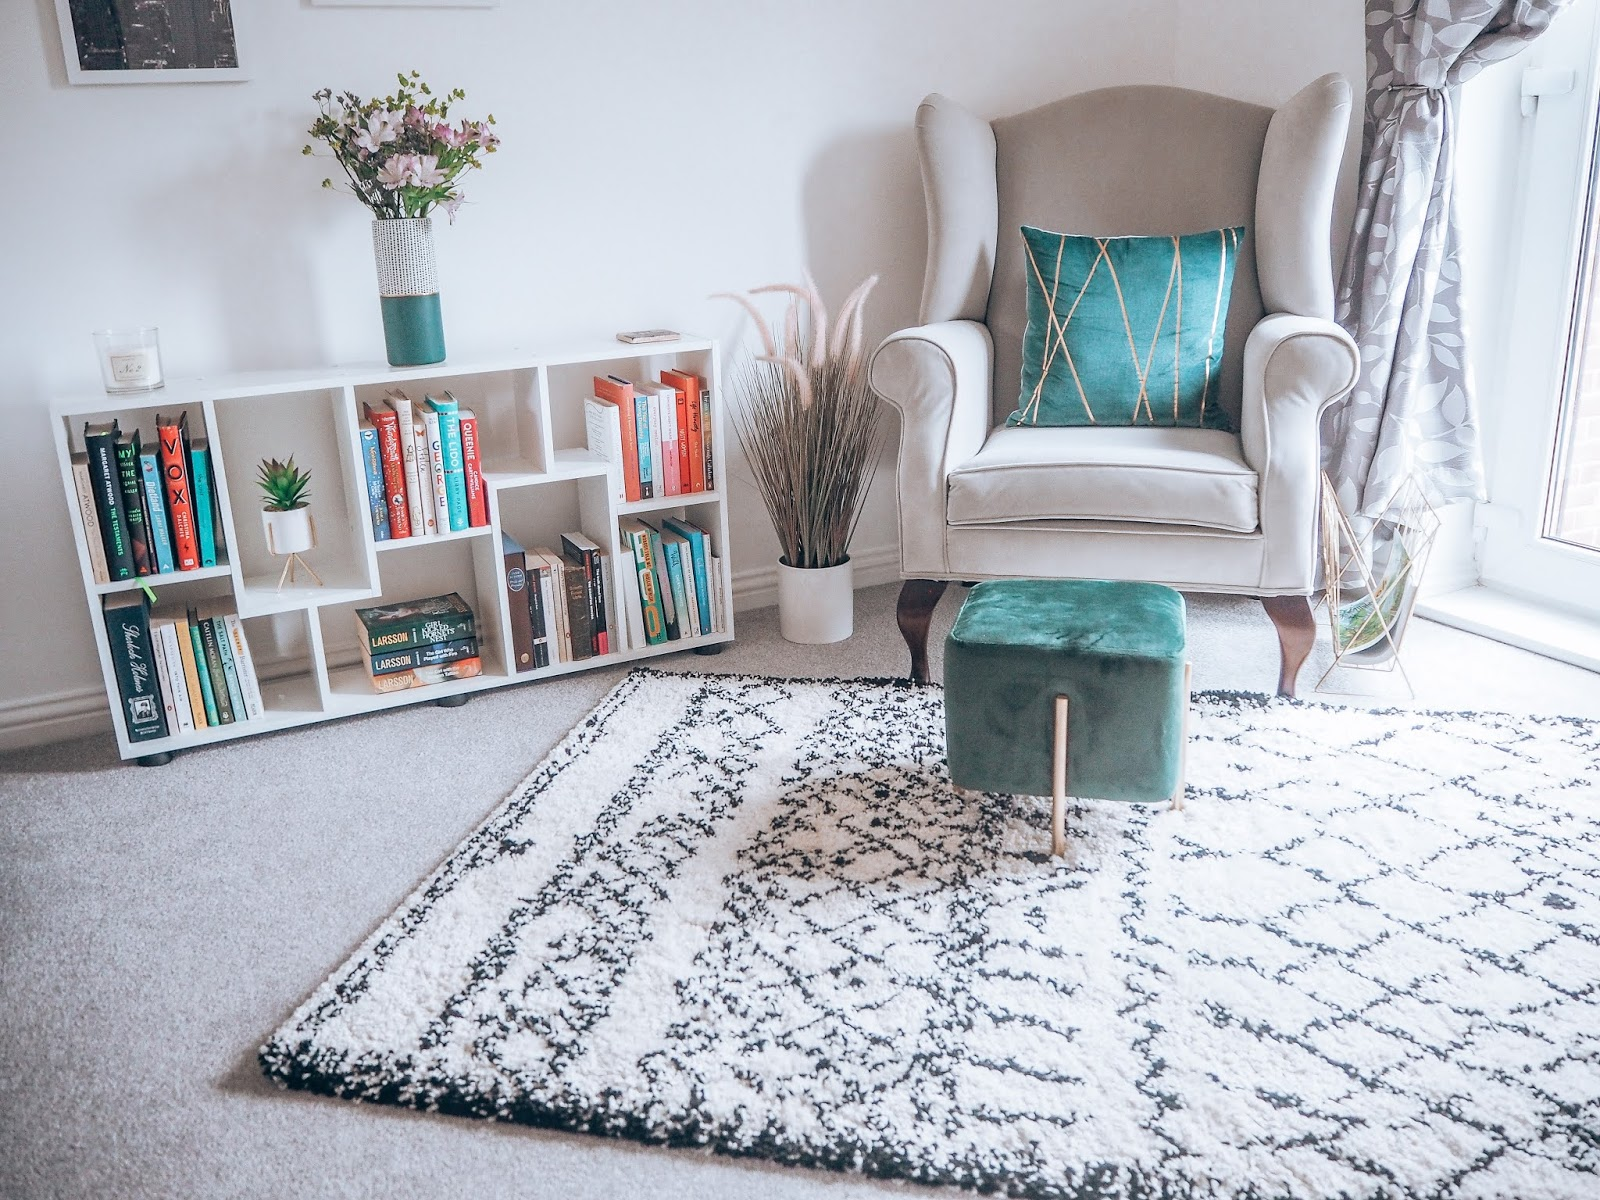 Decorating a living room